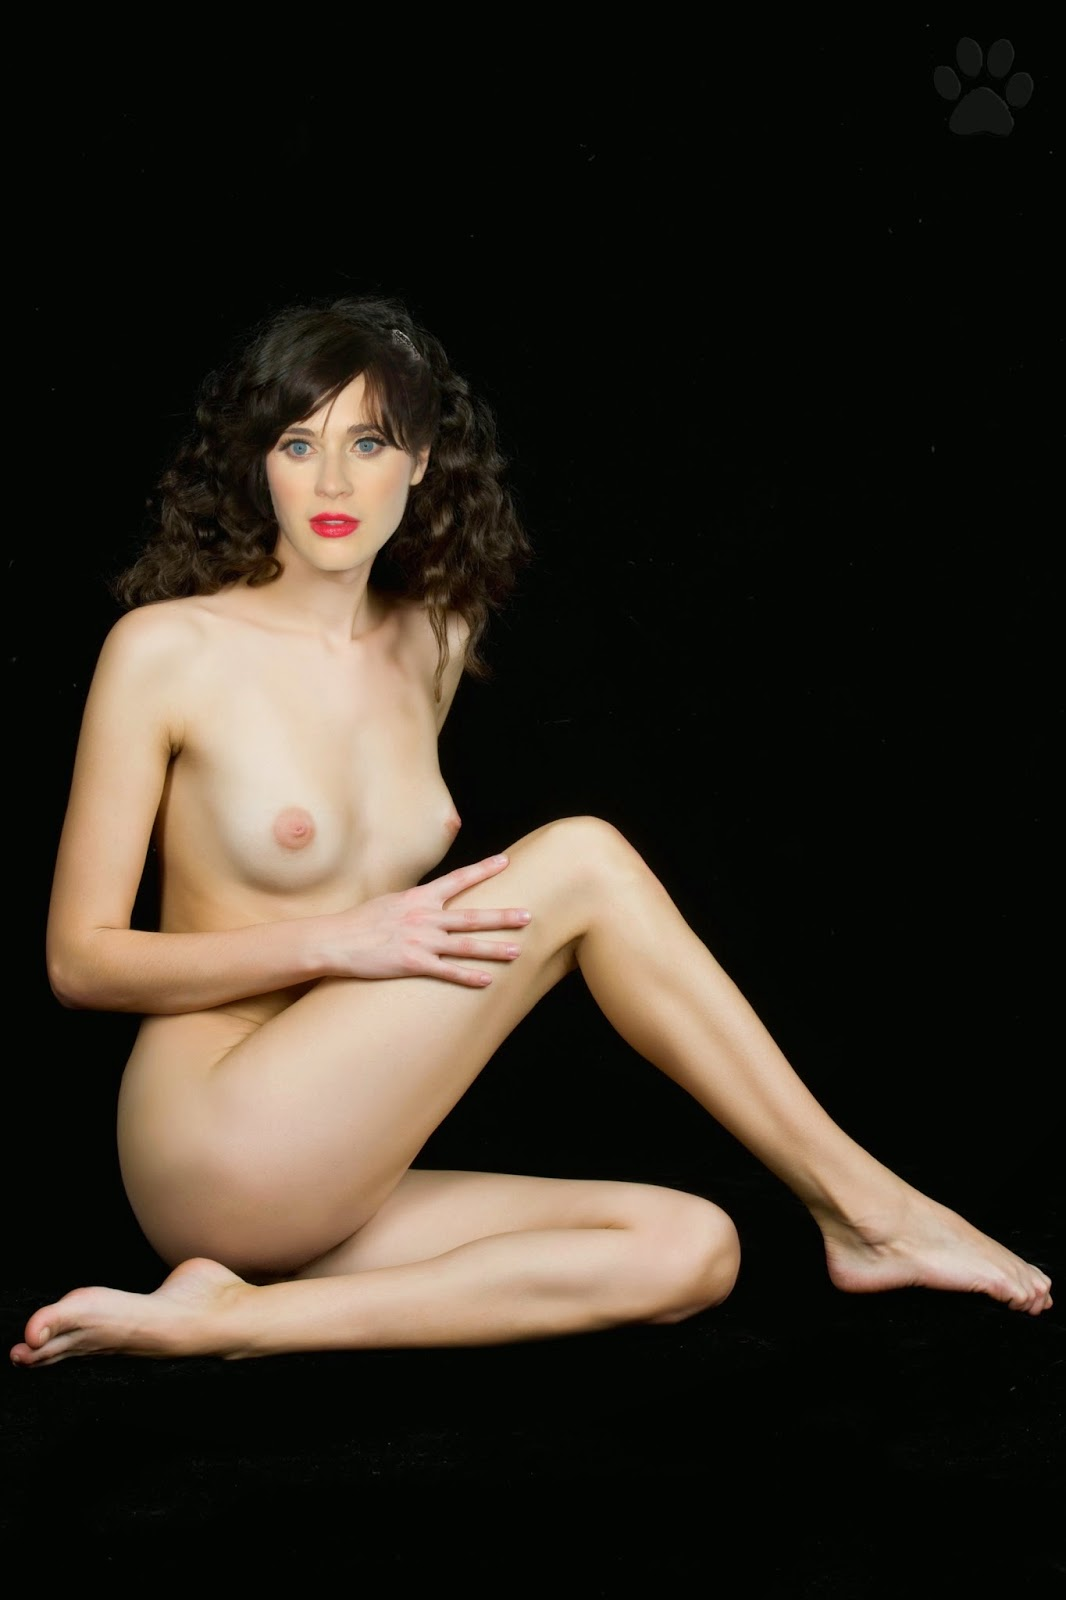 zooey deschanel nude